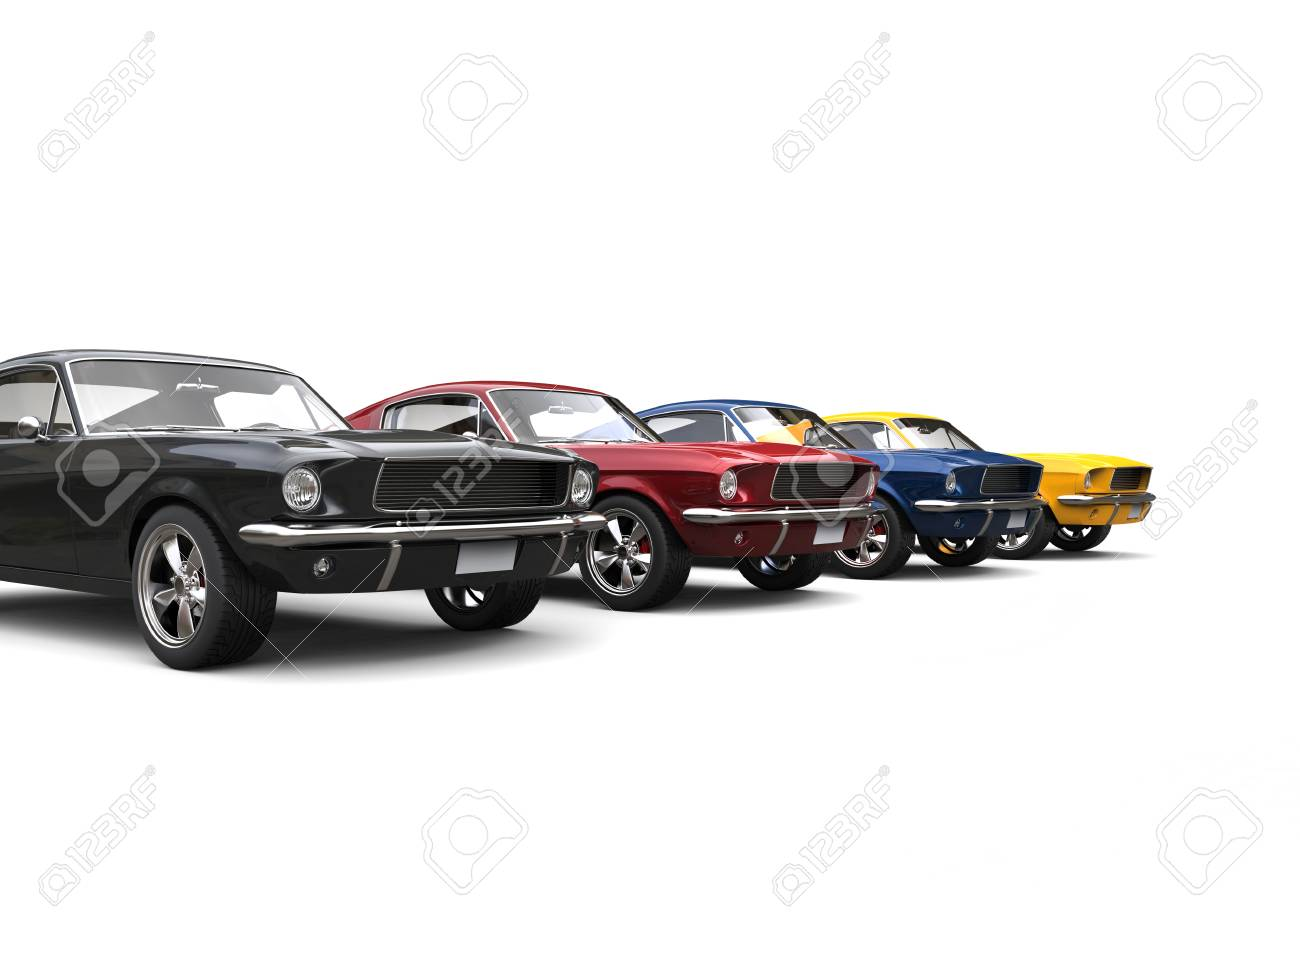 Amazing Vintage American Muscle Cars In Cool Metallic Colors Stock ...